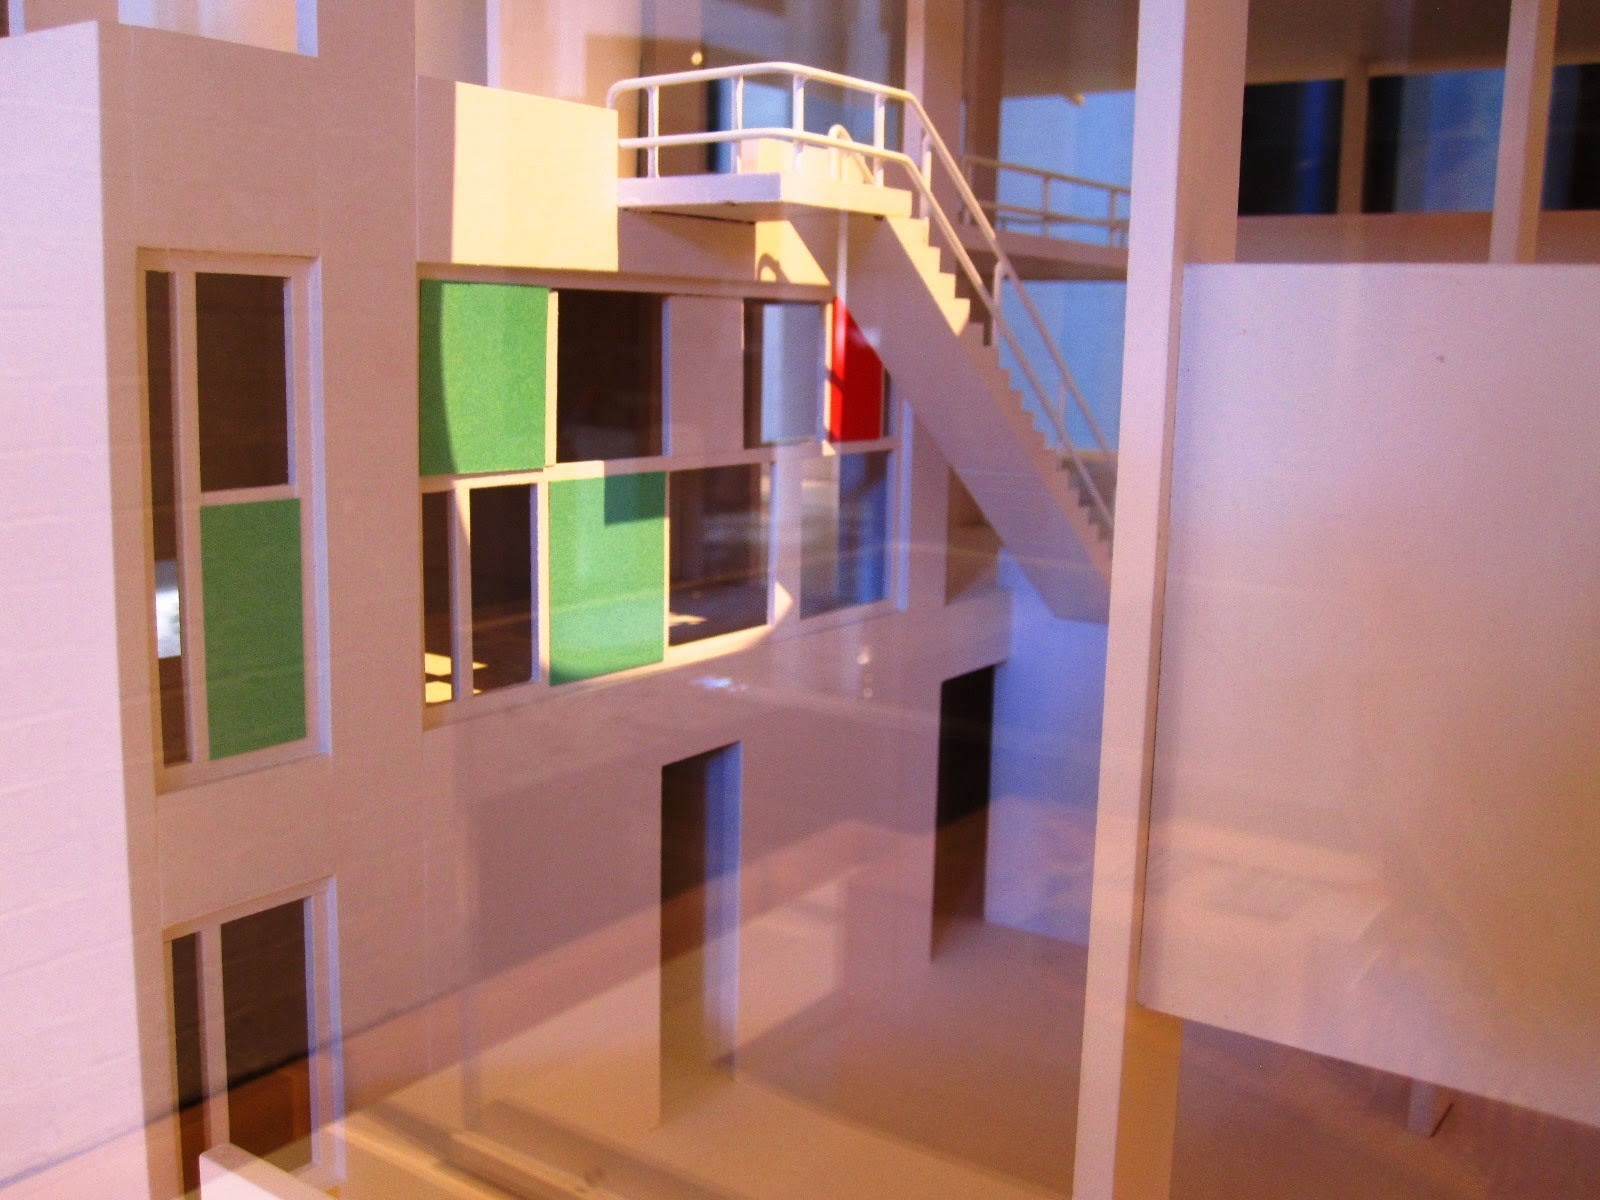 View of internal courtyard of a model of Le Corbusier's Villa Shodhan.